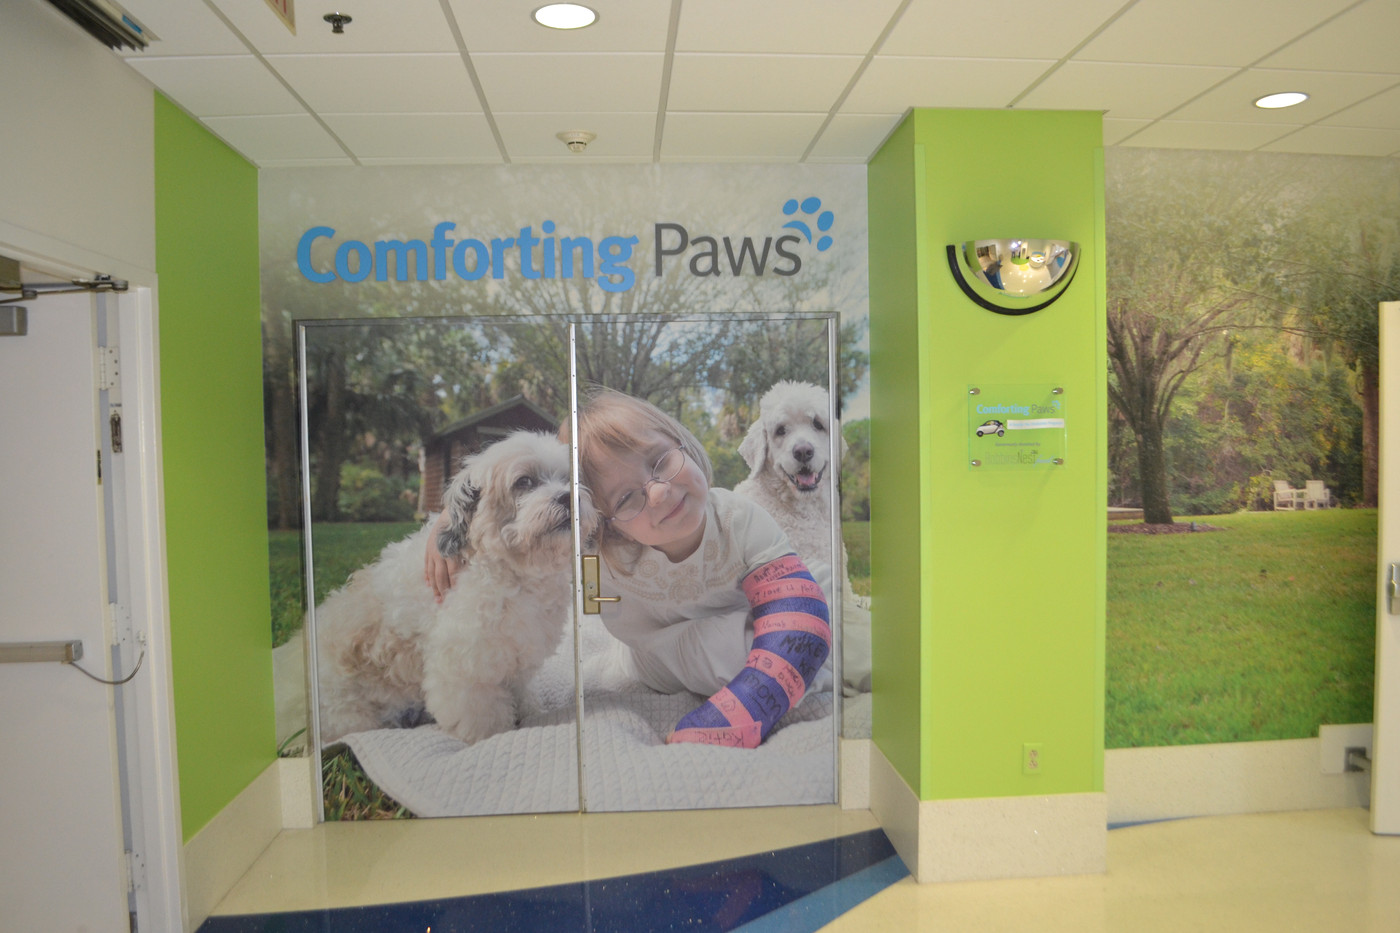 Comforting Paws wall mural